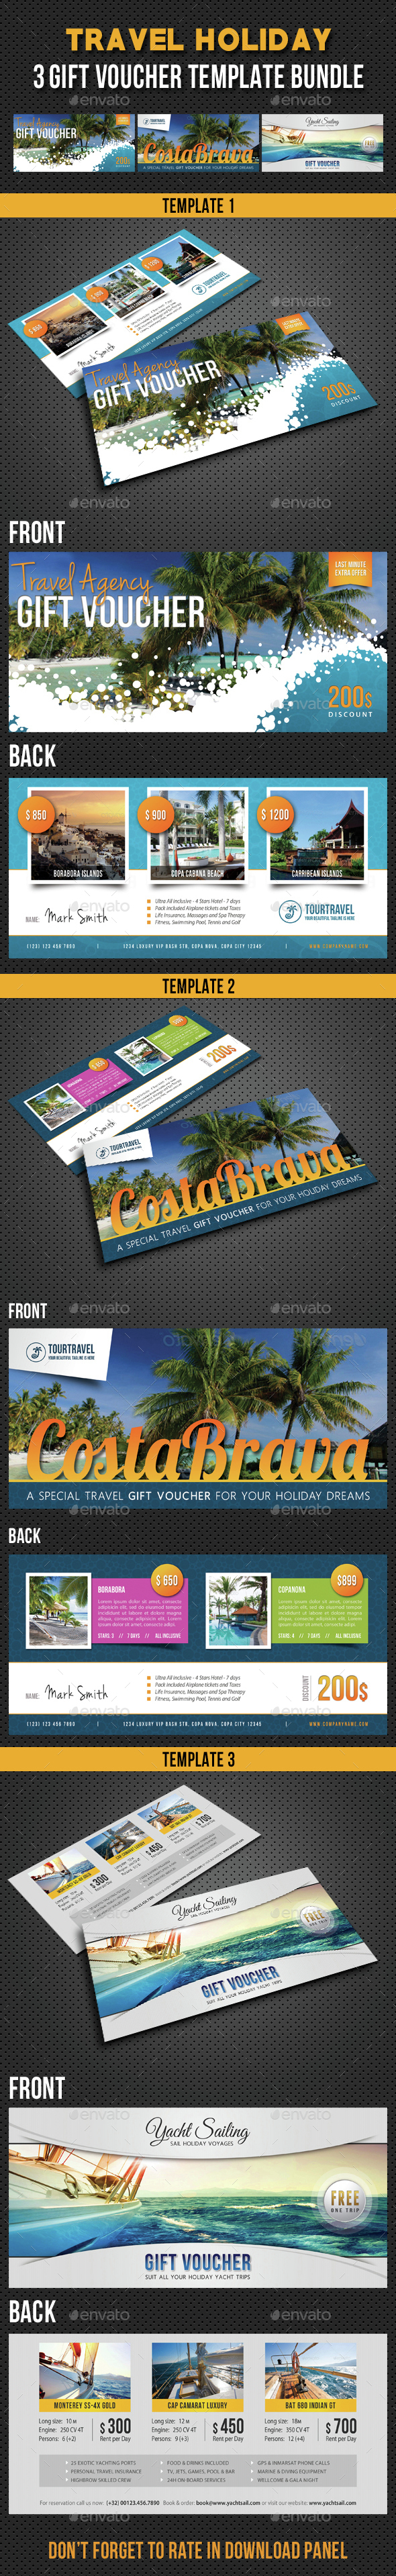 3 in 1 Travel Holiday Gift Voucher Bundle - Cards & Invites Print Templates